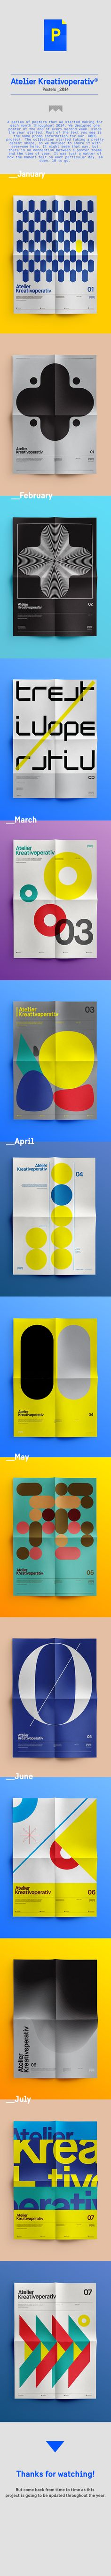 Kreativoperativ® / A Year in Posters. on Behance